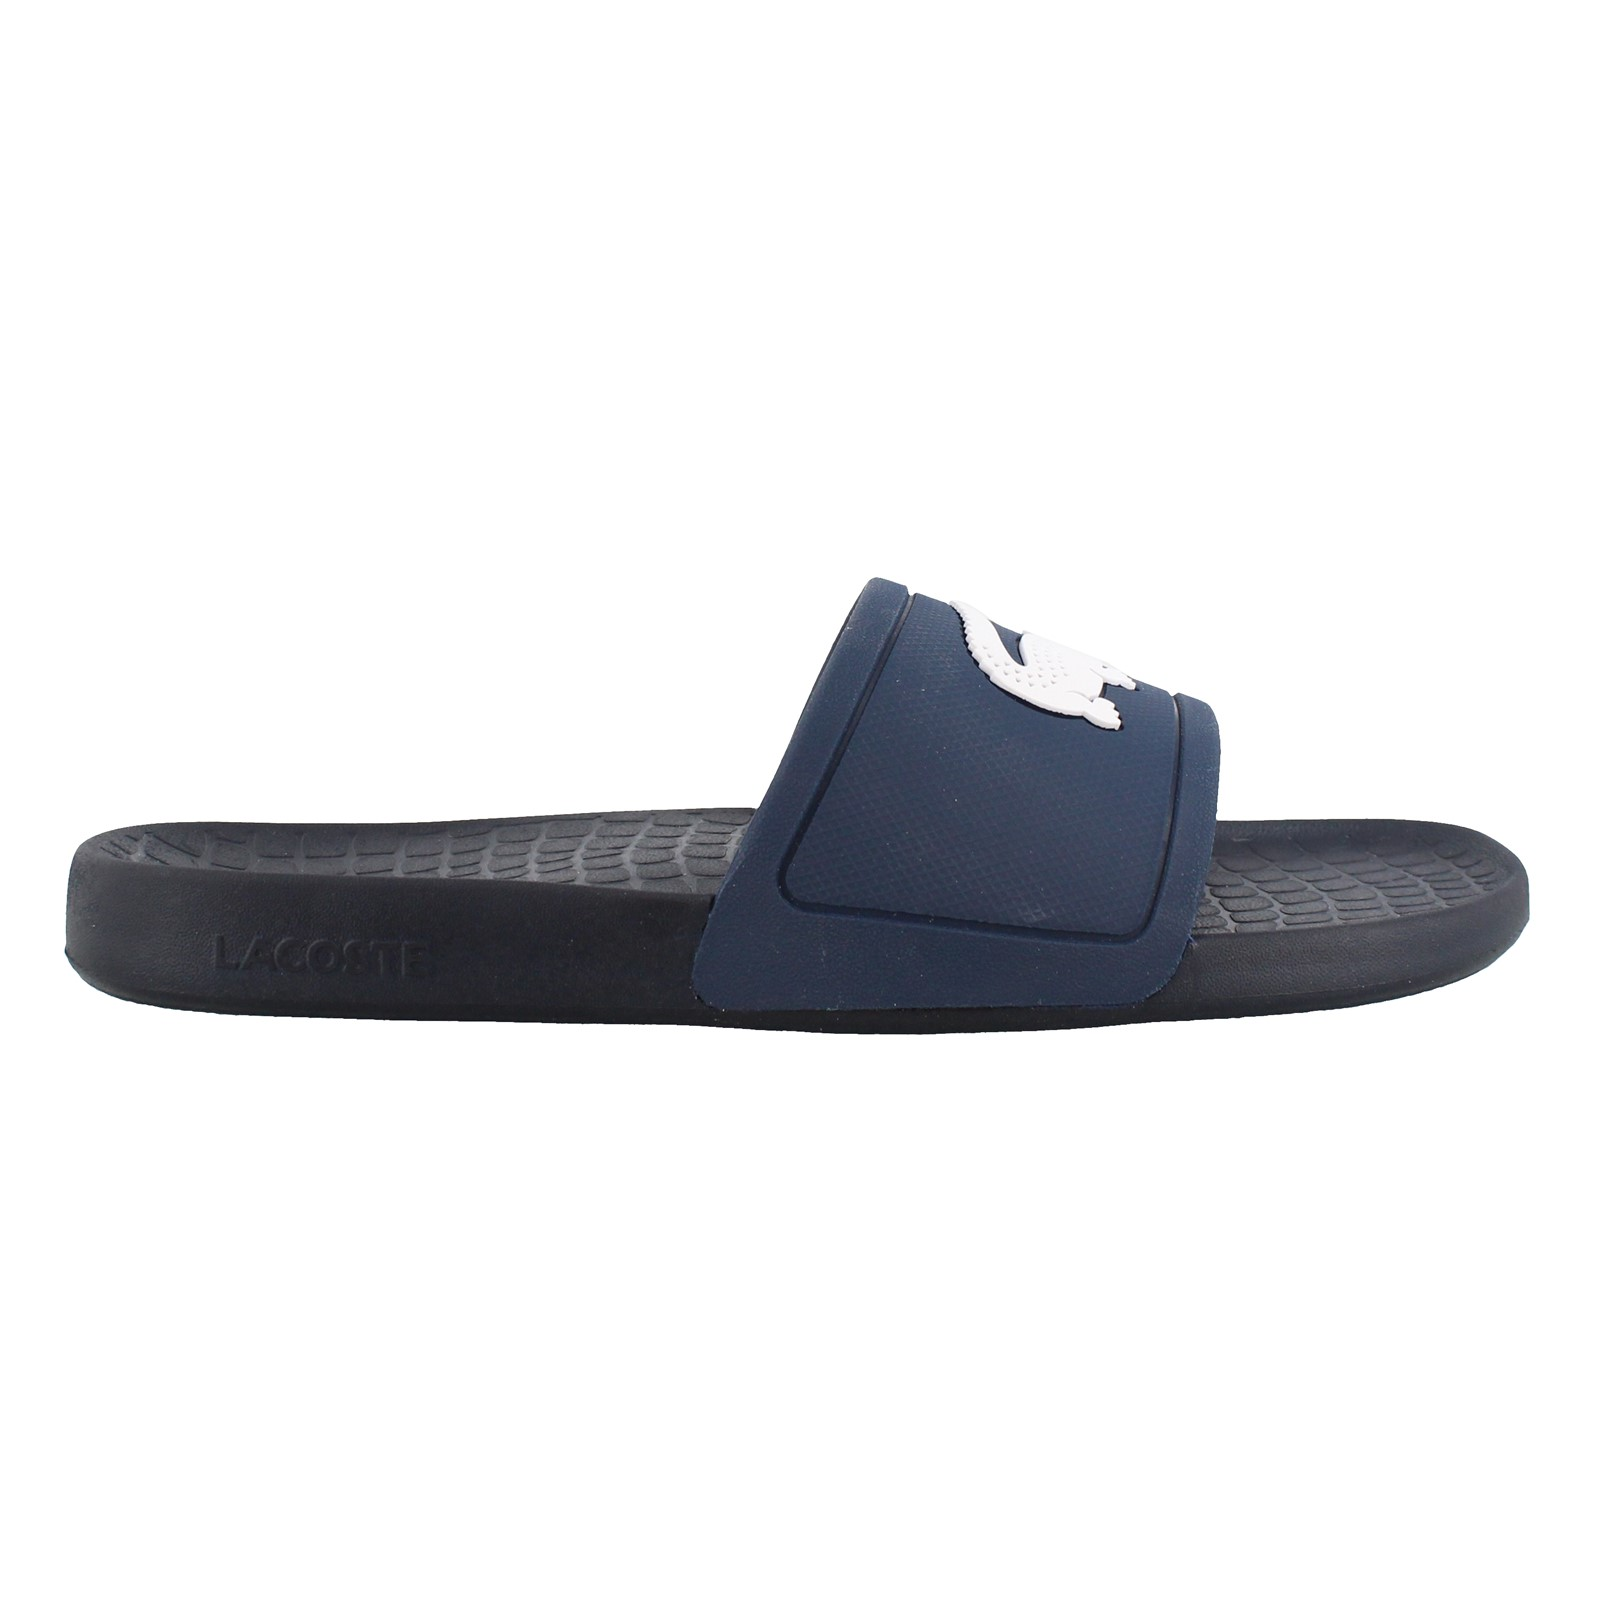 Men's LACOSTE, FRAISIER 318 SLIDE SANDALS